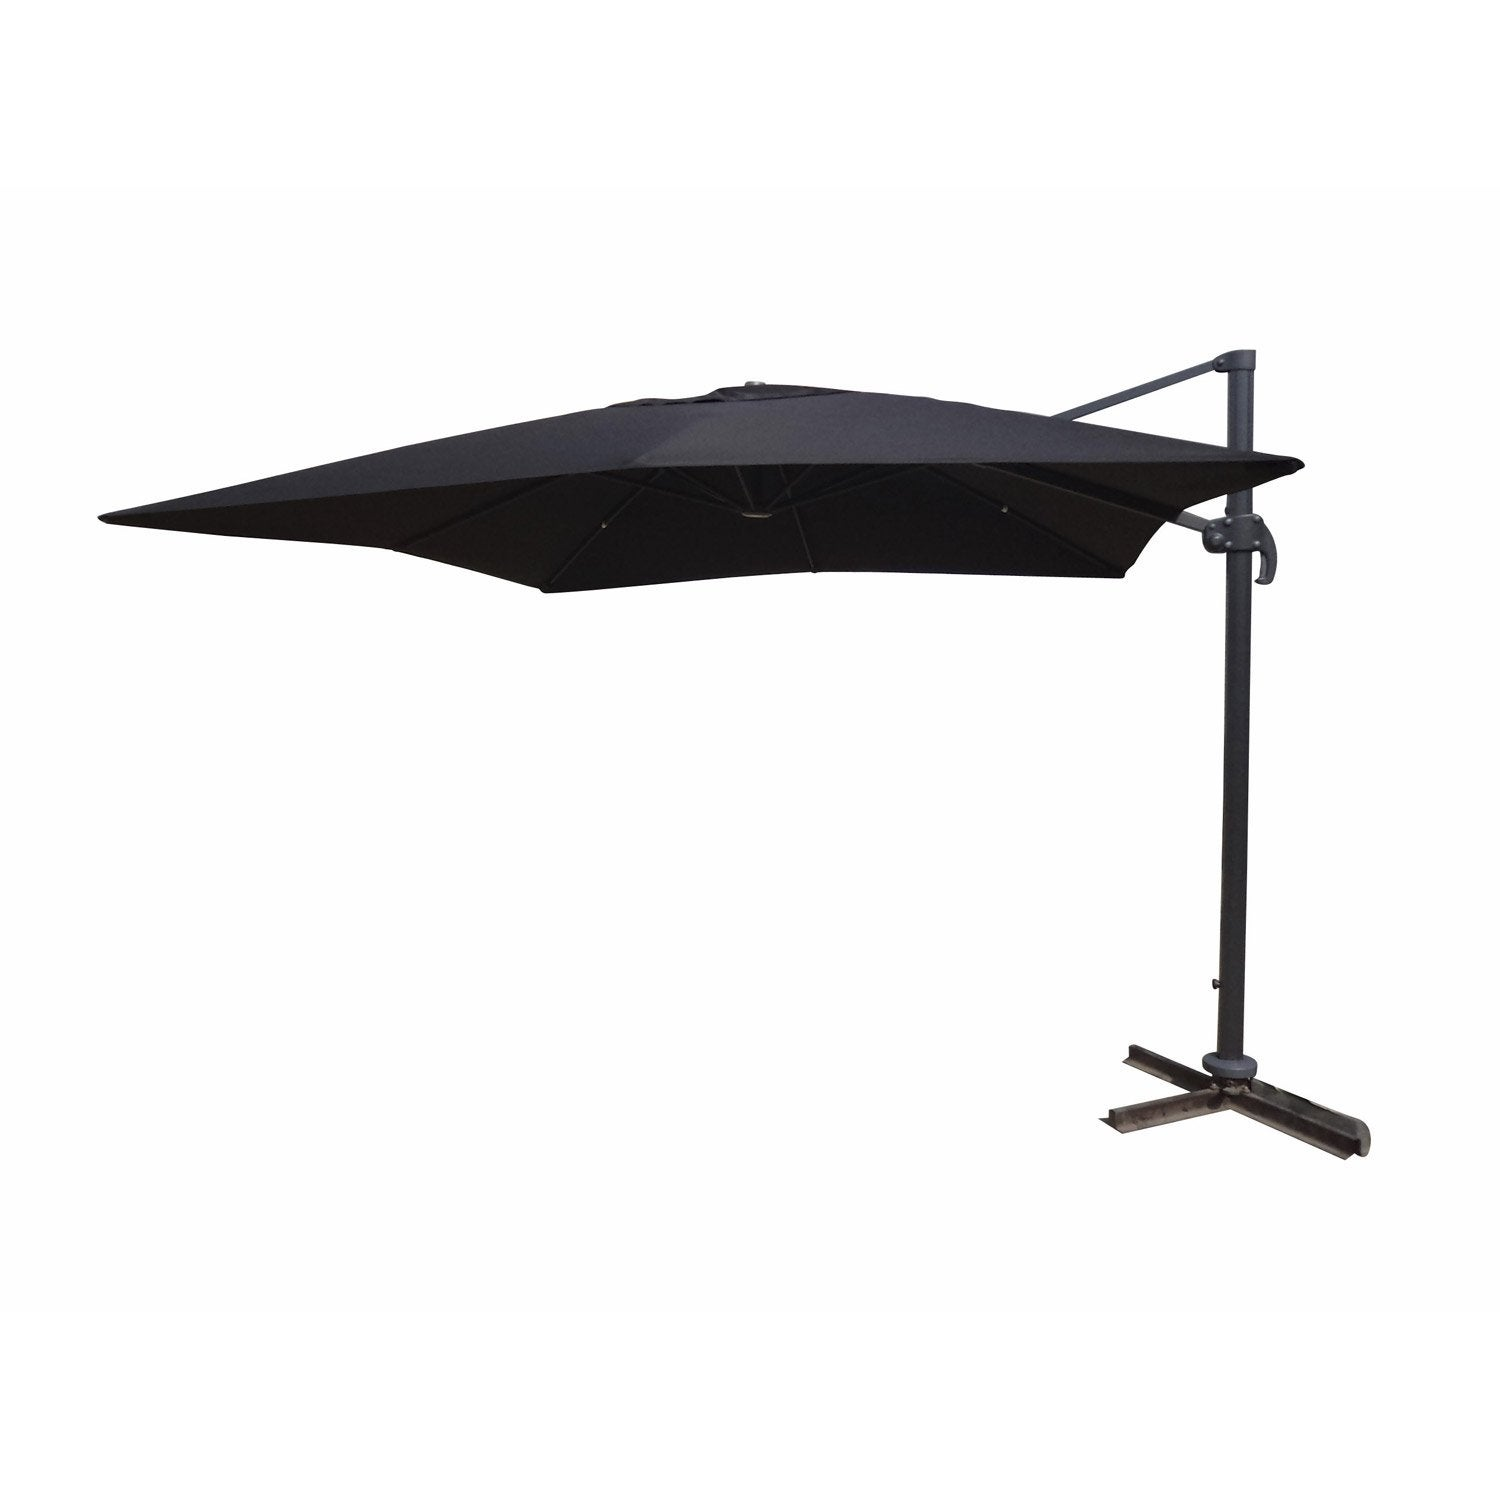 parasol excentr dec fesno 3x4m noir leroy merlin. Black Bedroom Furniture Sets. Home Design Ideas